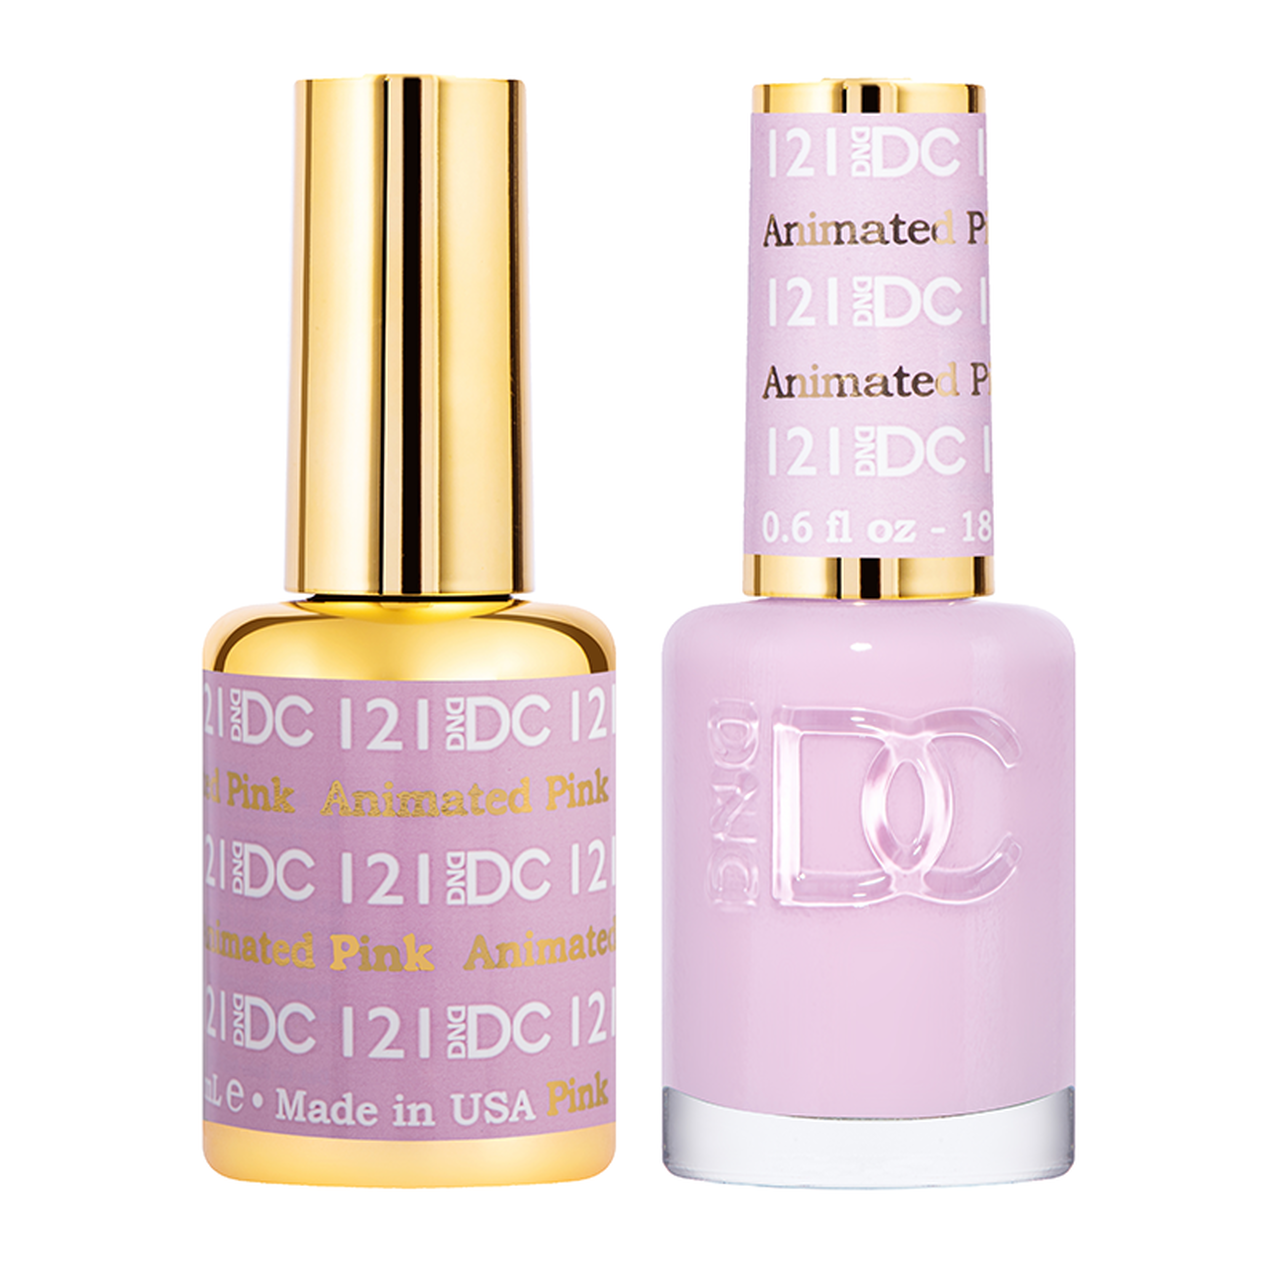 DND DC DUO GEL - #121 ANIMATED PINK